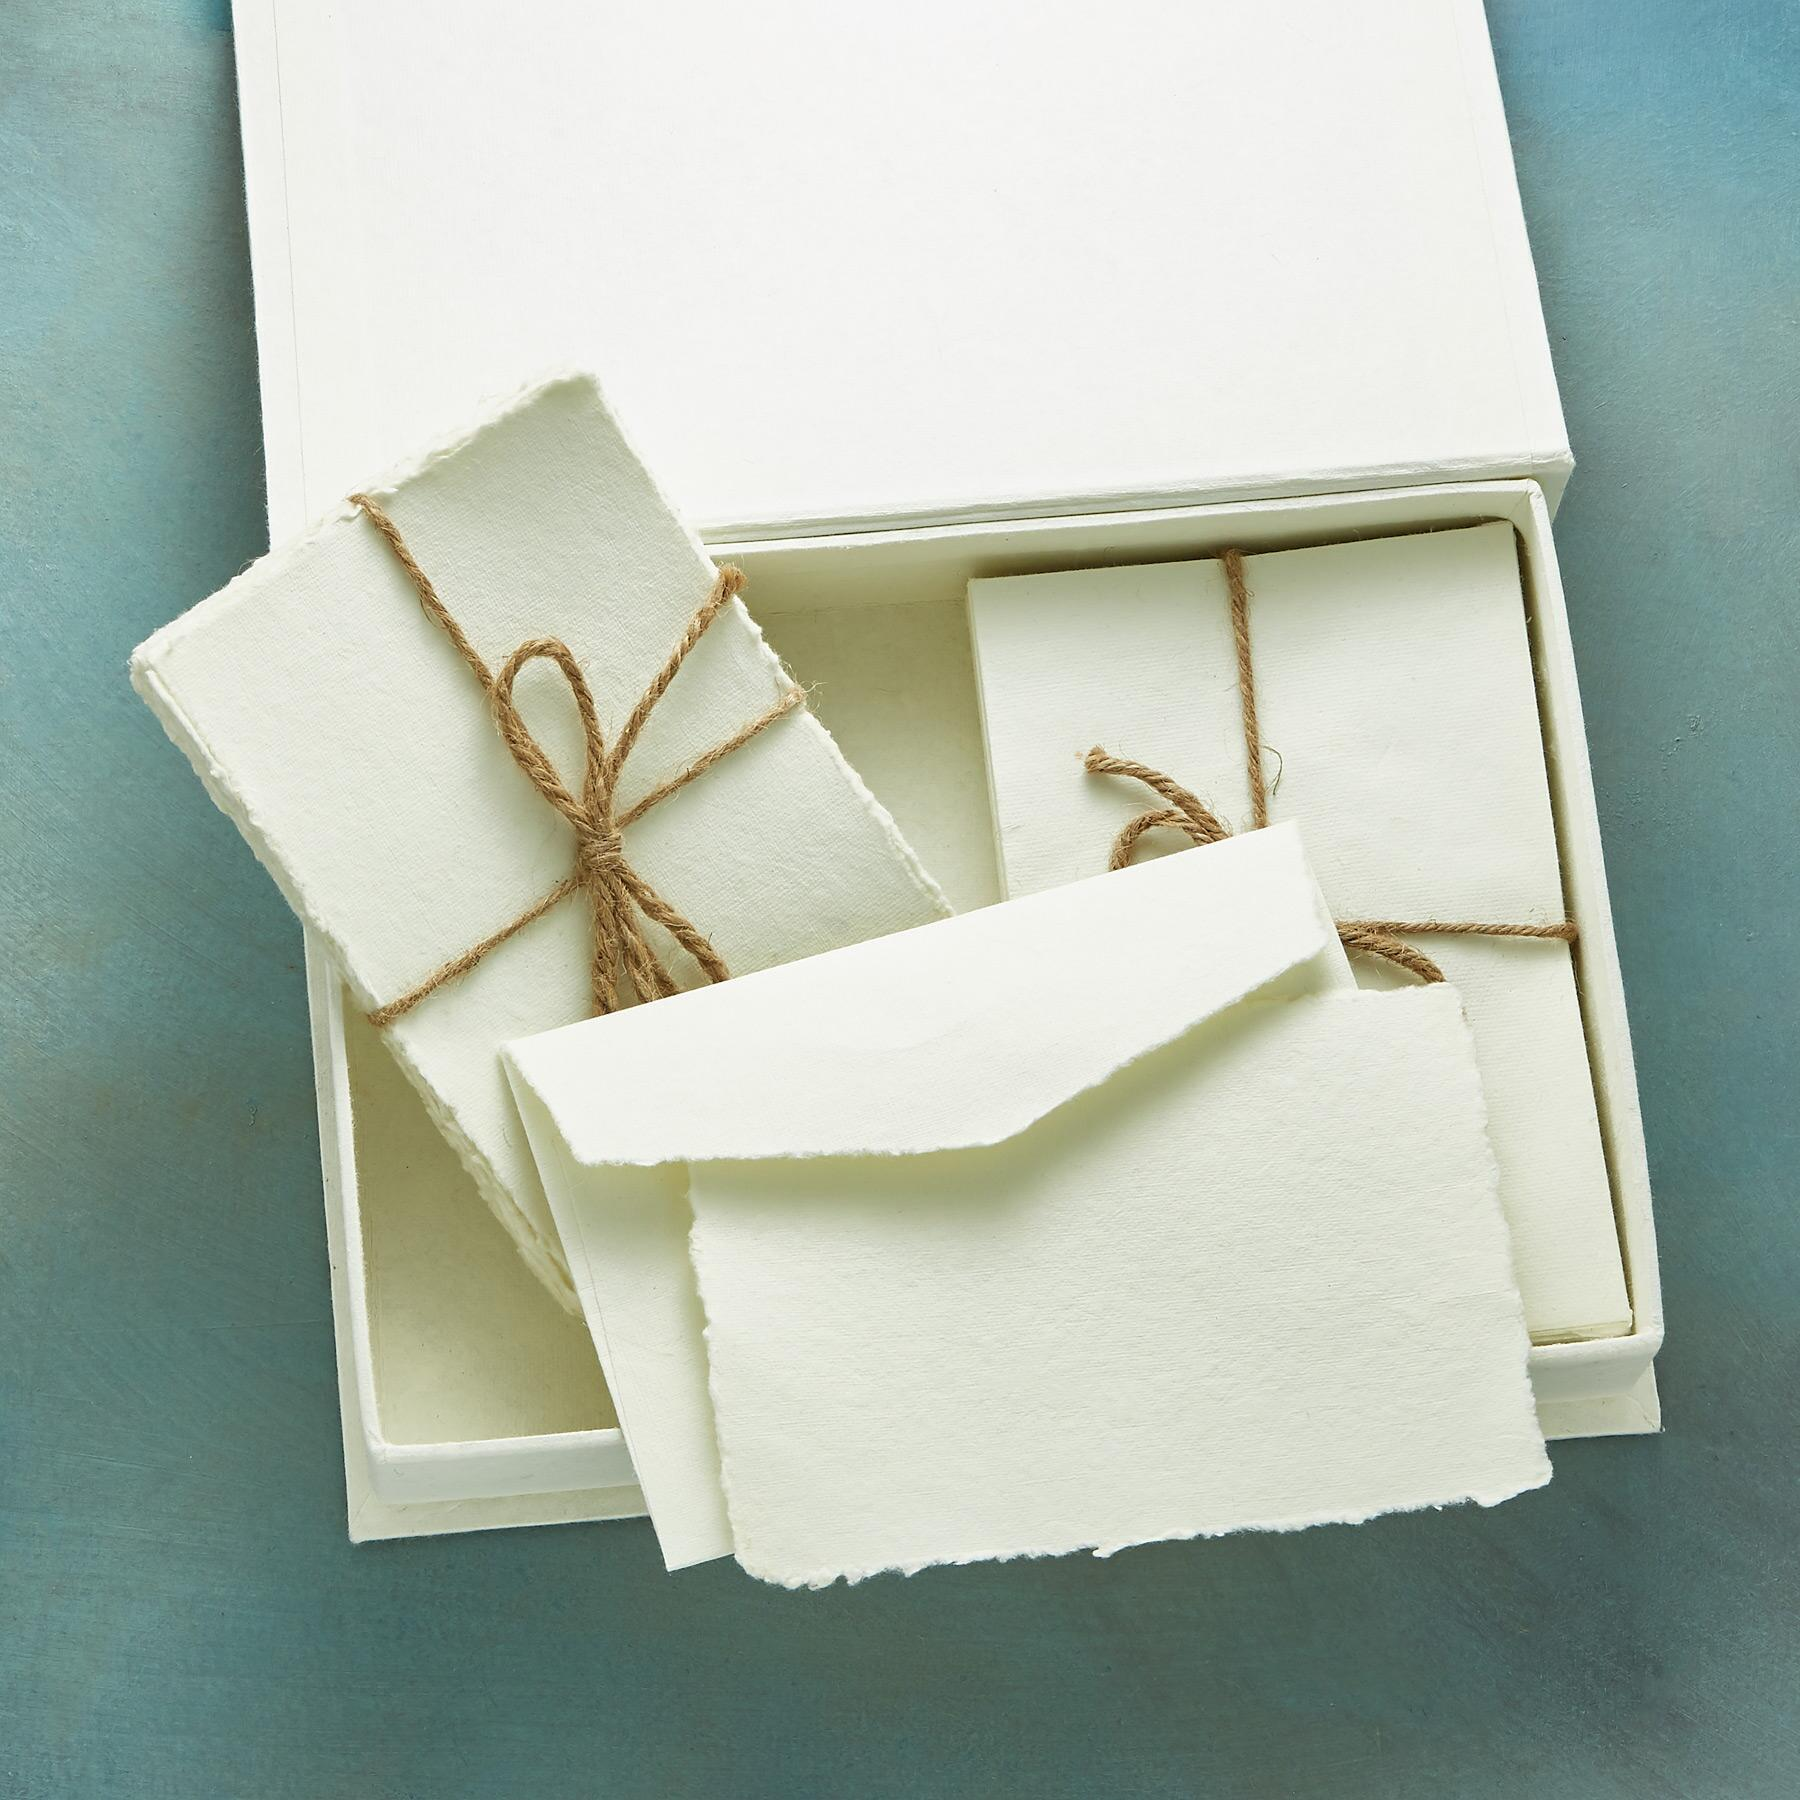 LETTERBOX STATIONERY: View 3